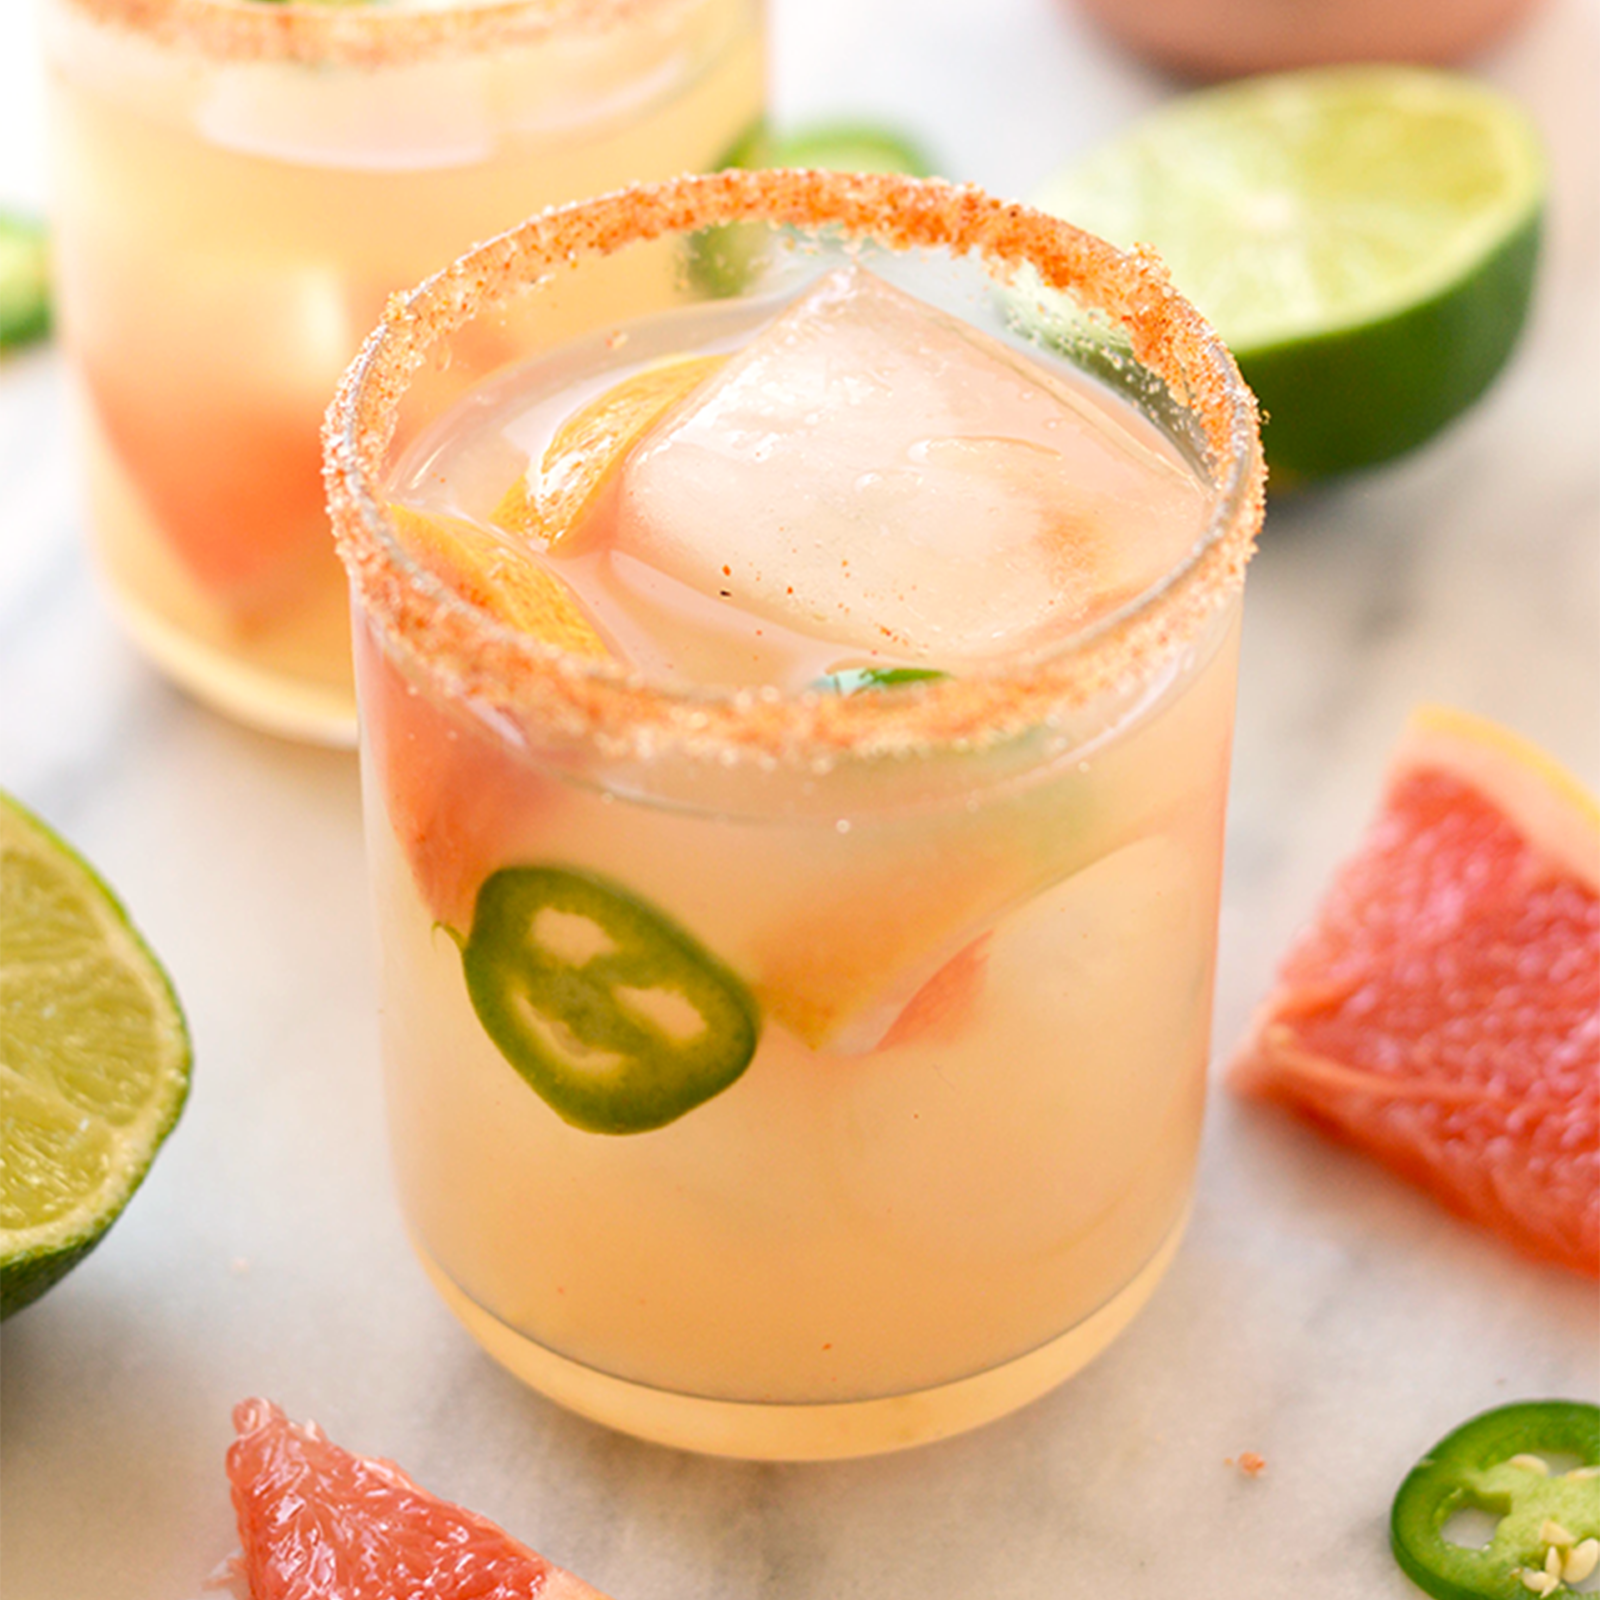 15 Margarita Recipes That Will Have You Dreaming of Warm Weather